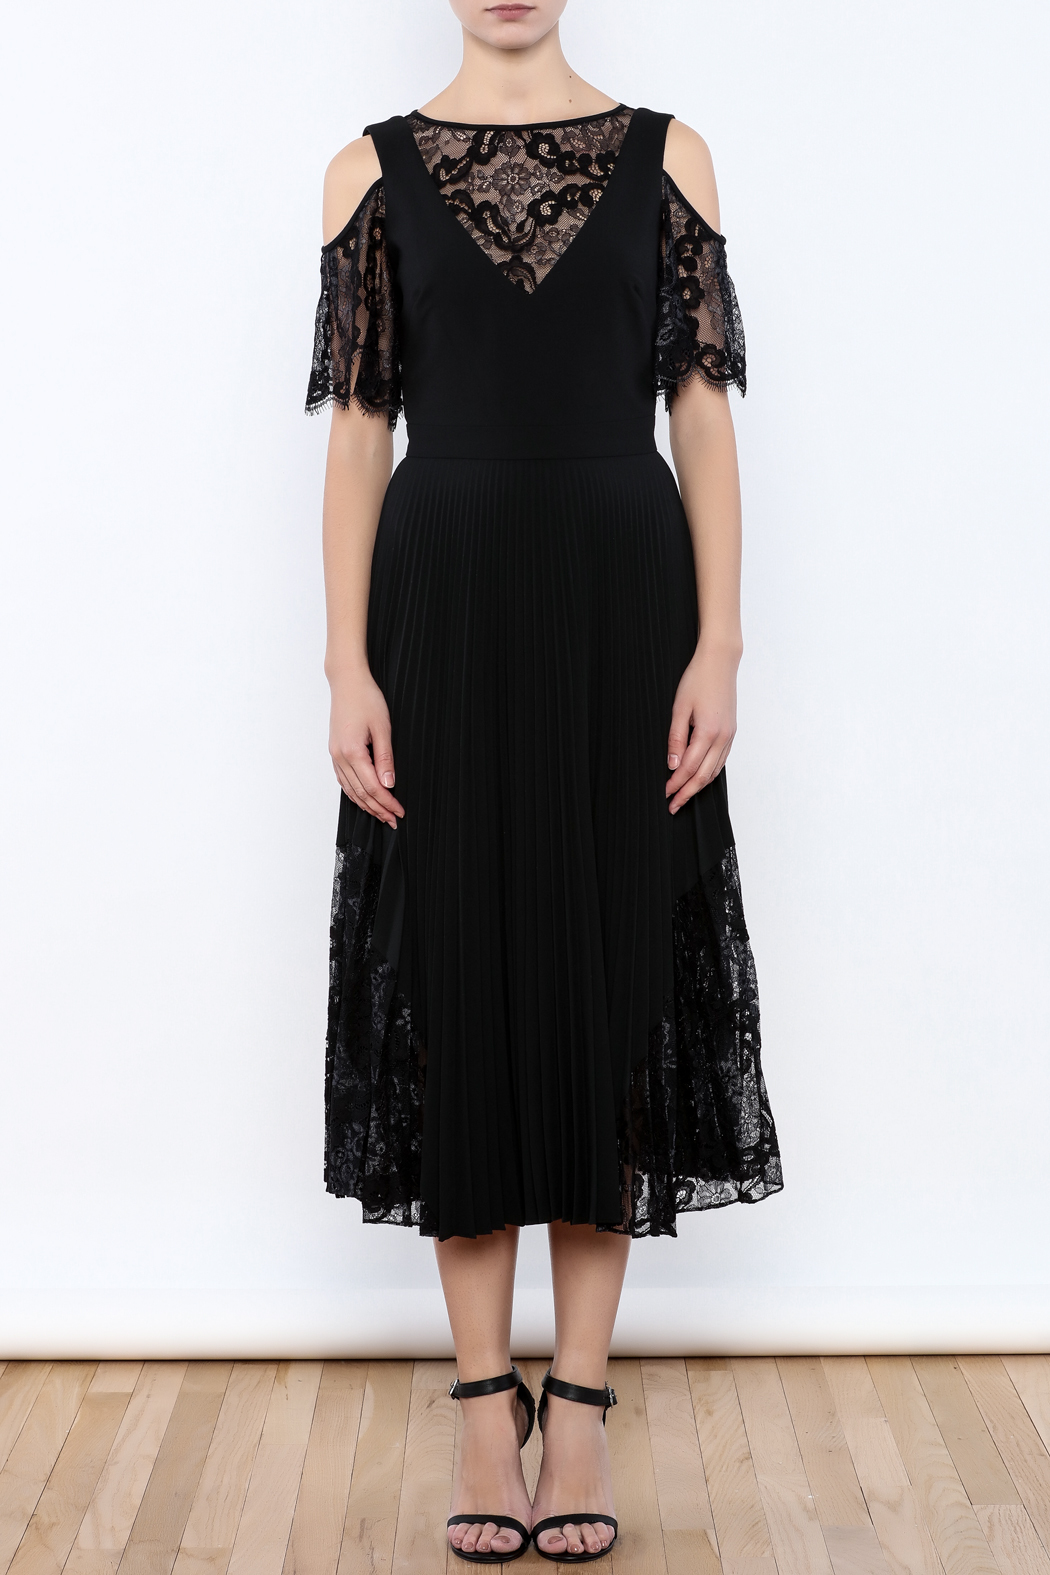 Nicole Miller Black Illusion Dress - Front Cropped Image